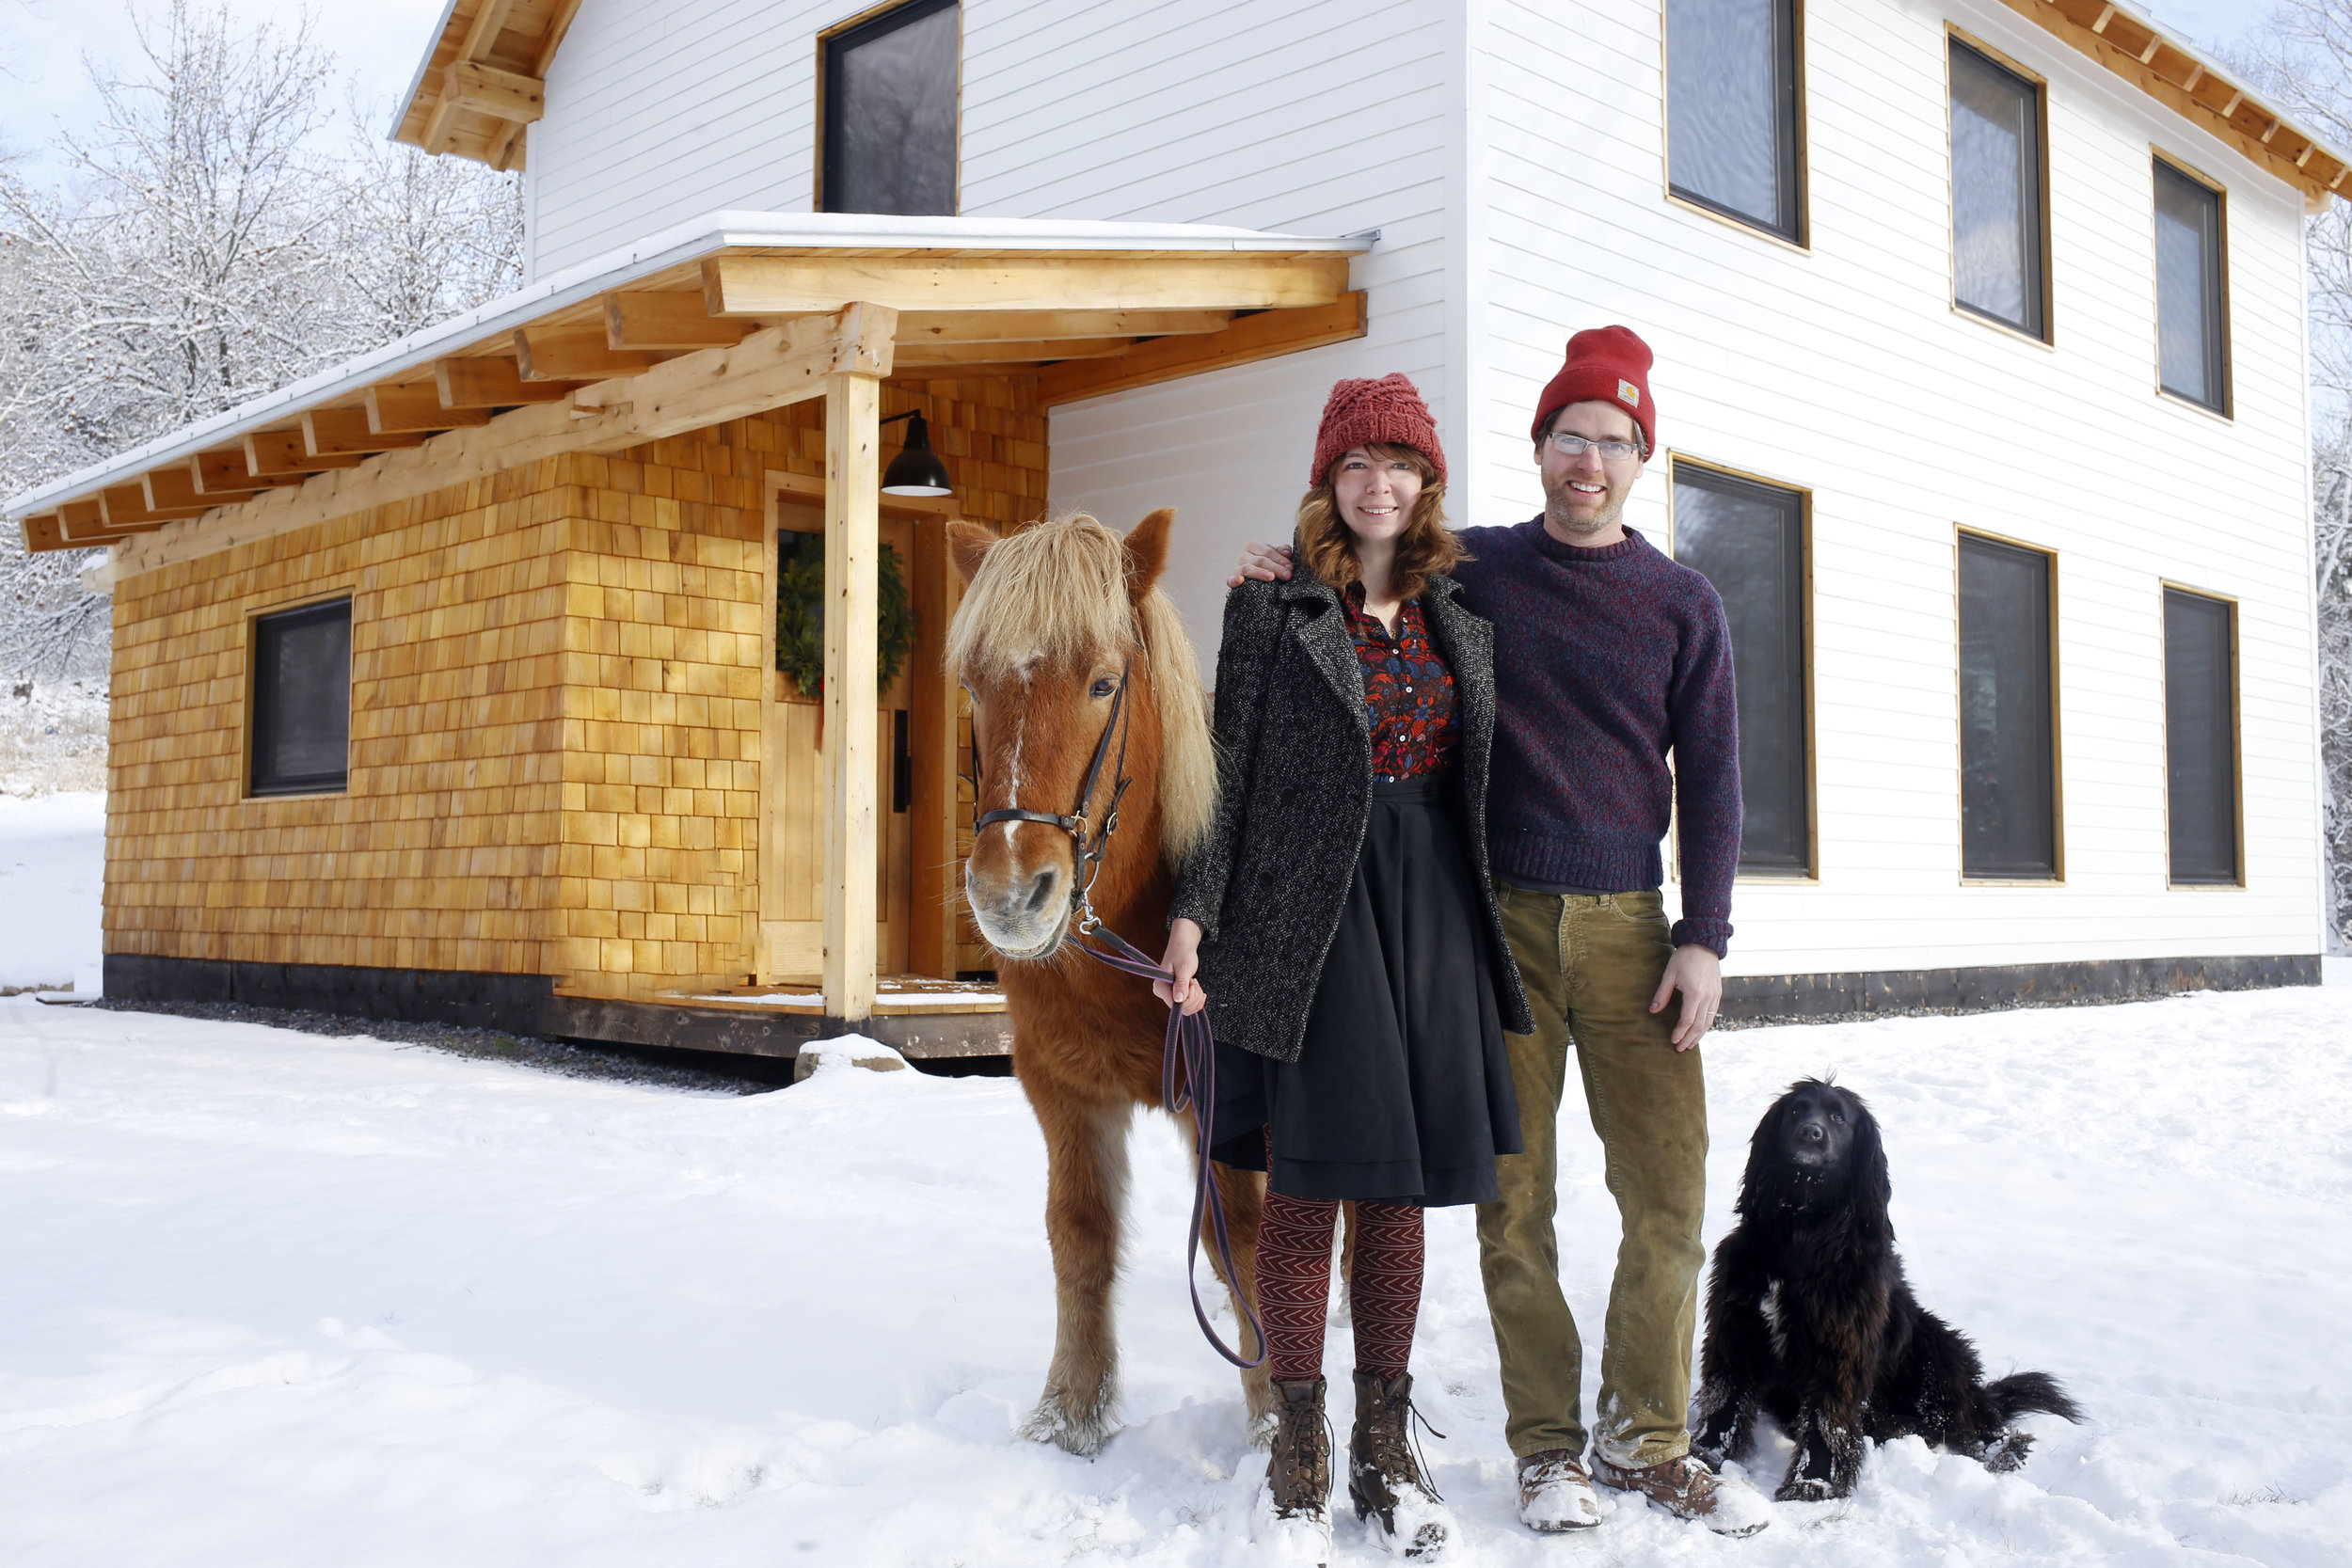 Sarah, Jeff, Glaumur (horse) and Arlo (dog) at our house we built ourselves this year!